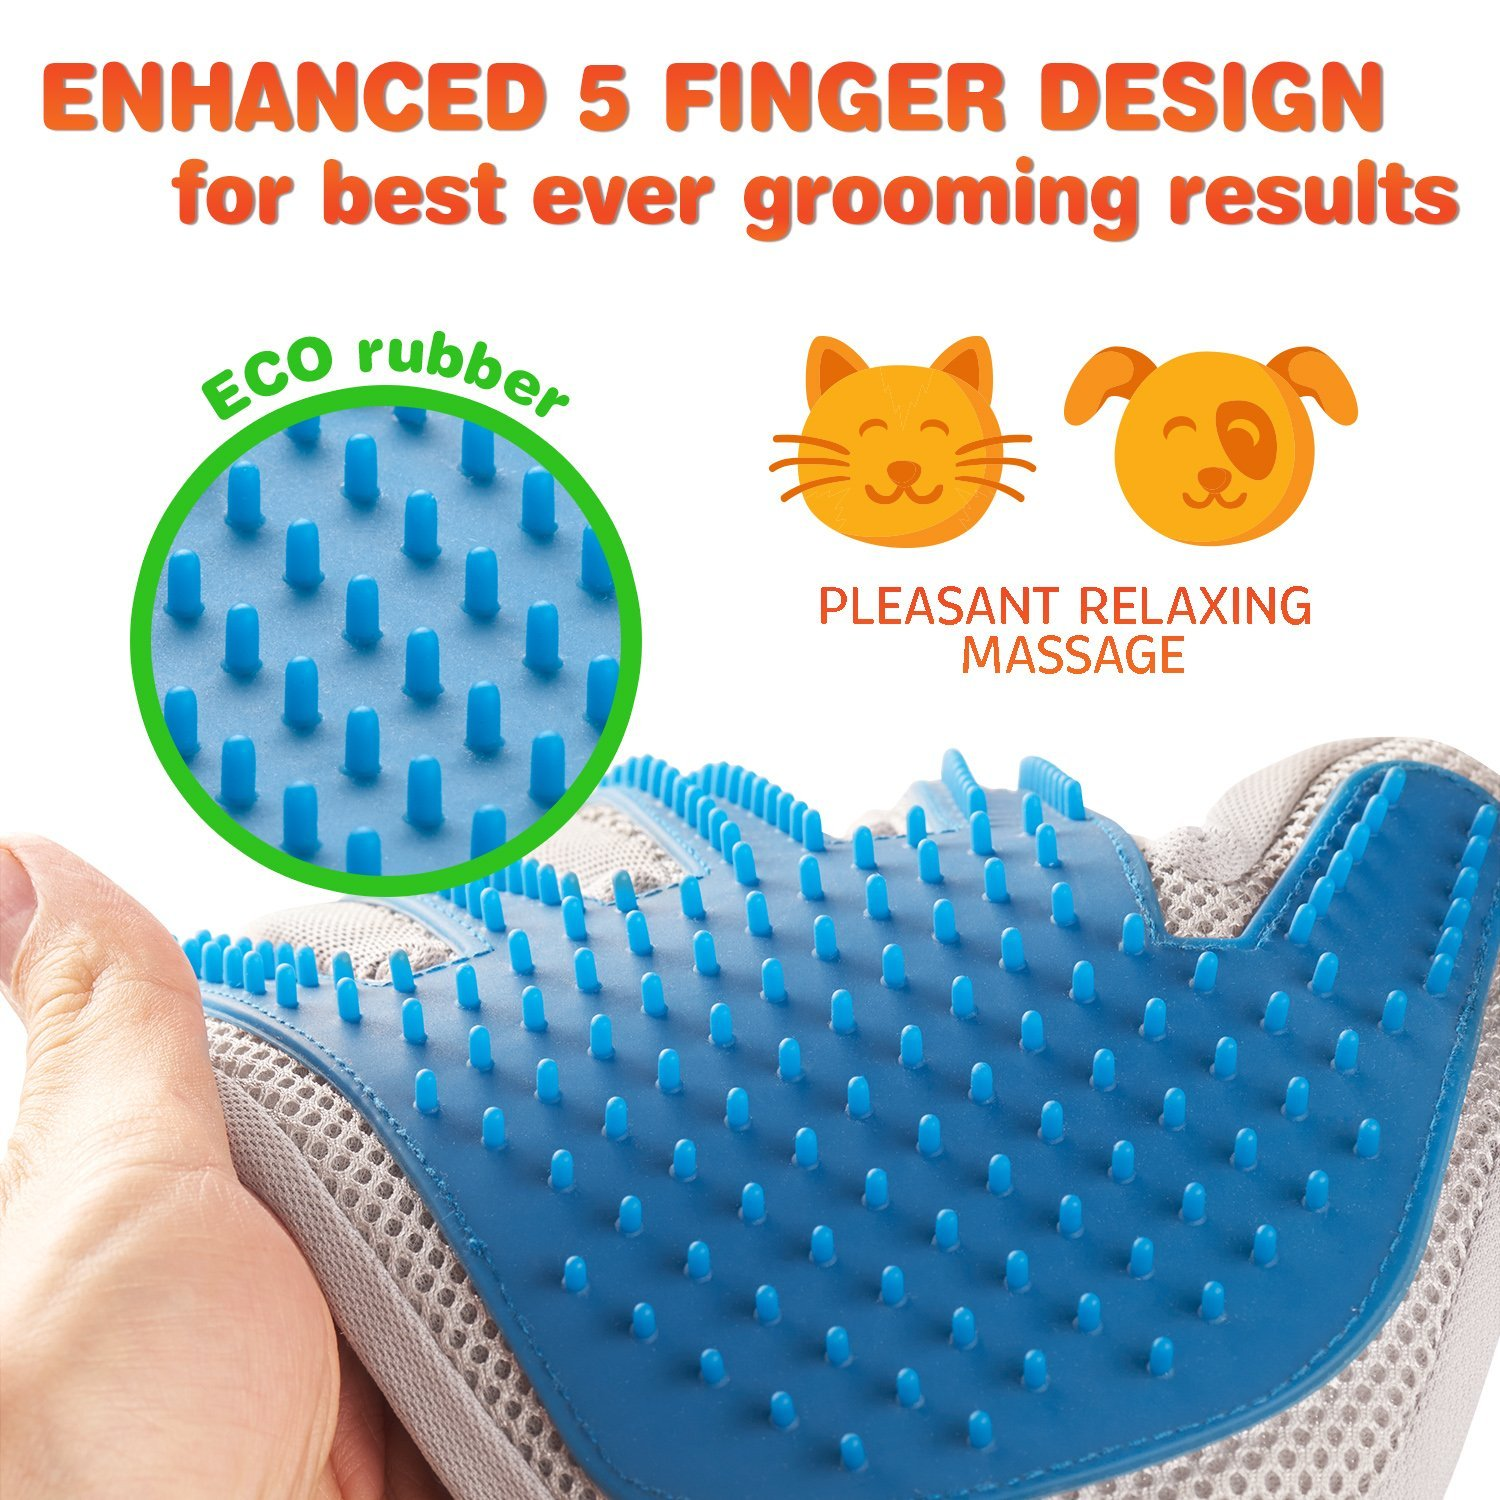 Review of Pat Your Pet Grooming Glove for Cats and Dogs